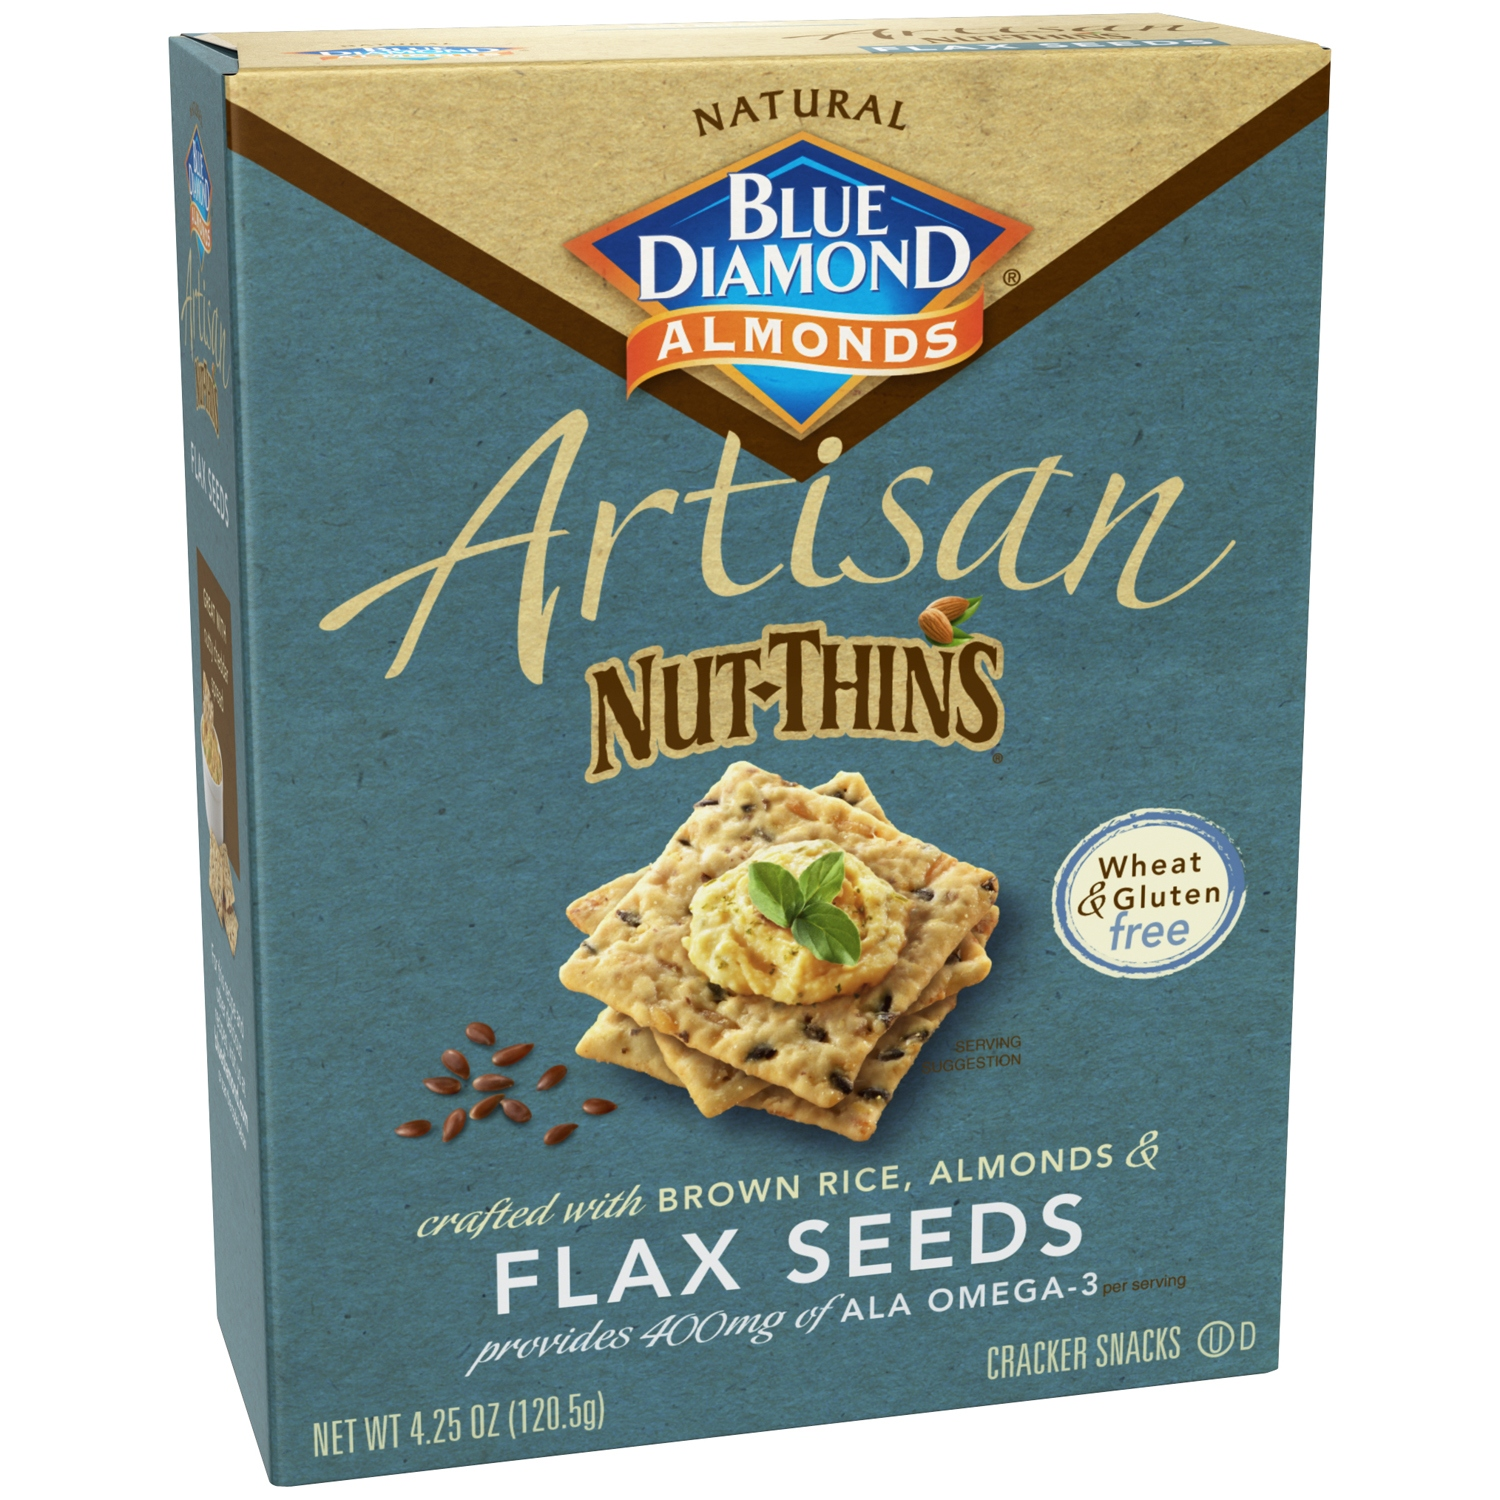 Artisan Nut Thins Crackers, Flax Seeds 4.25 oz Box